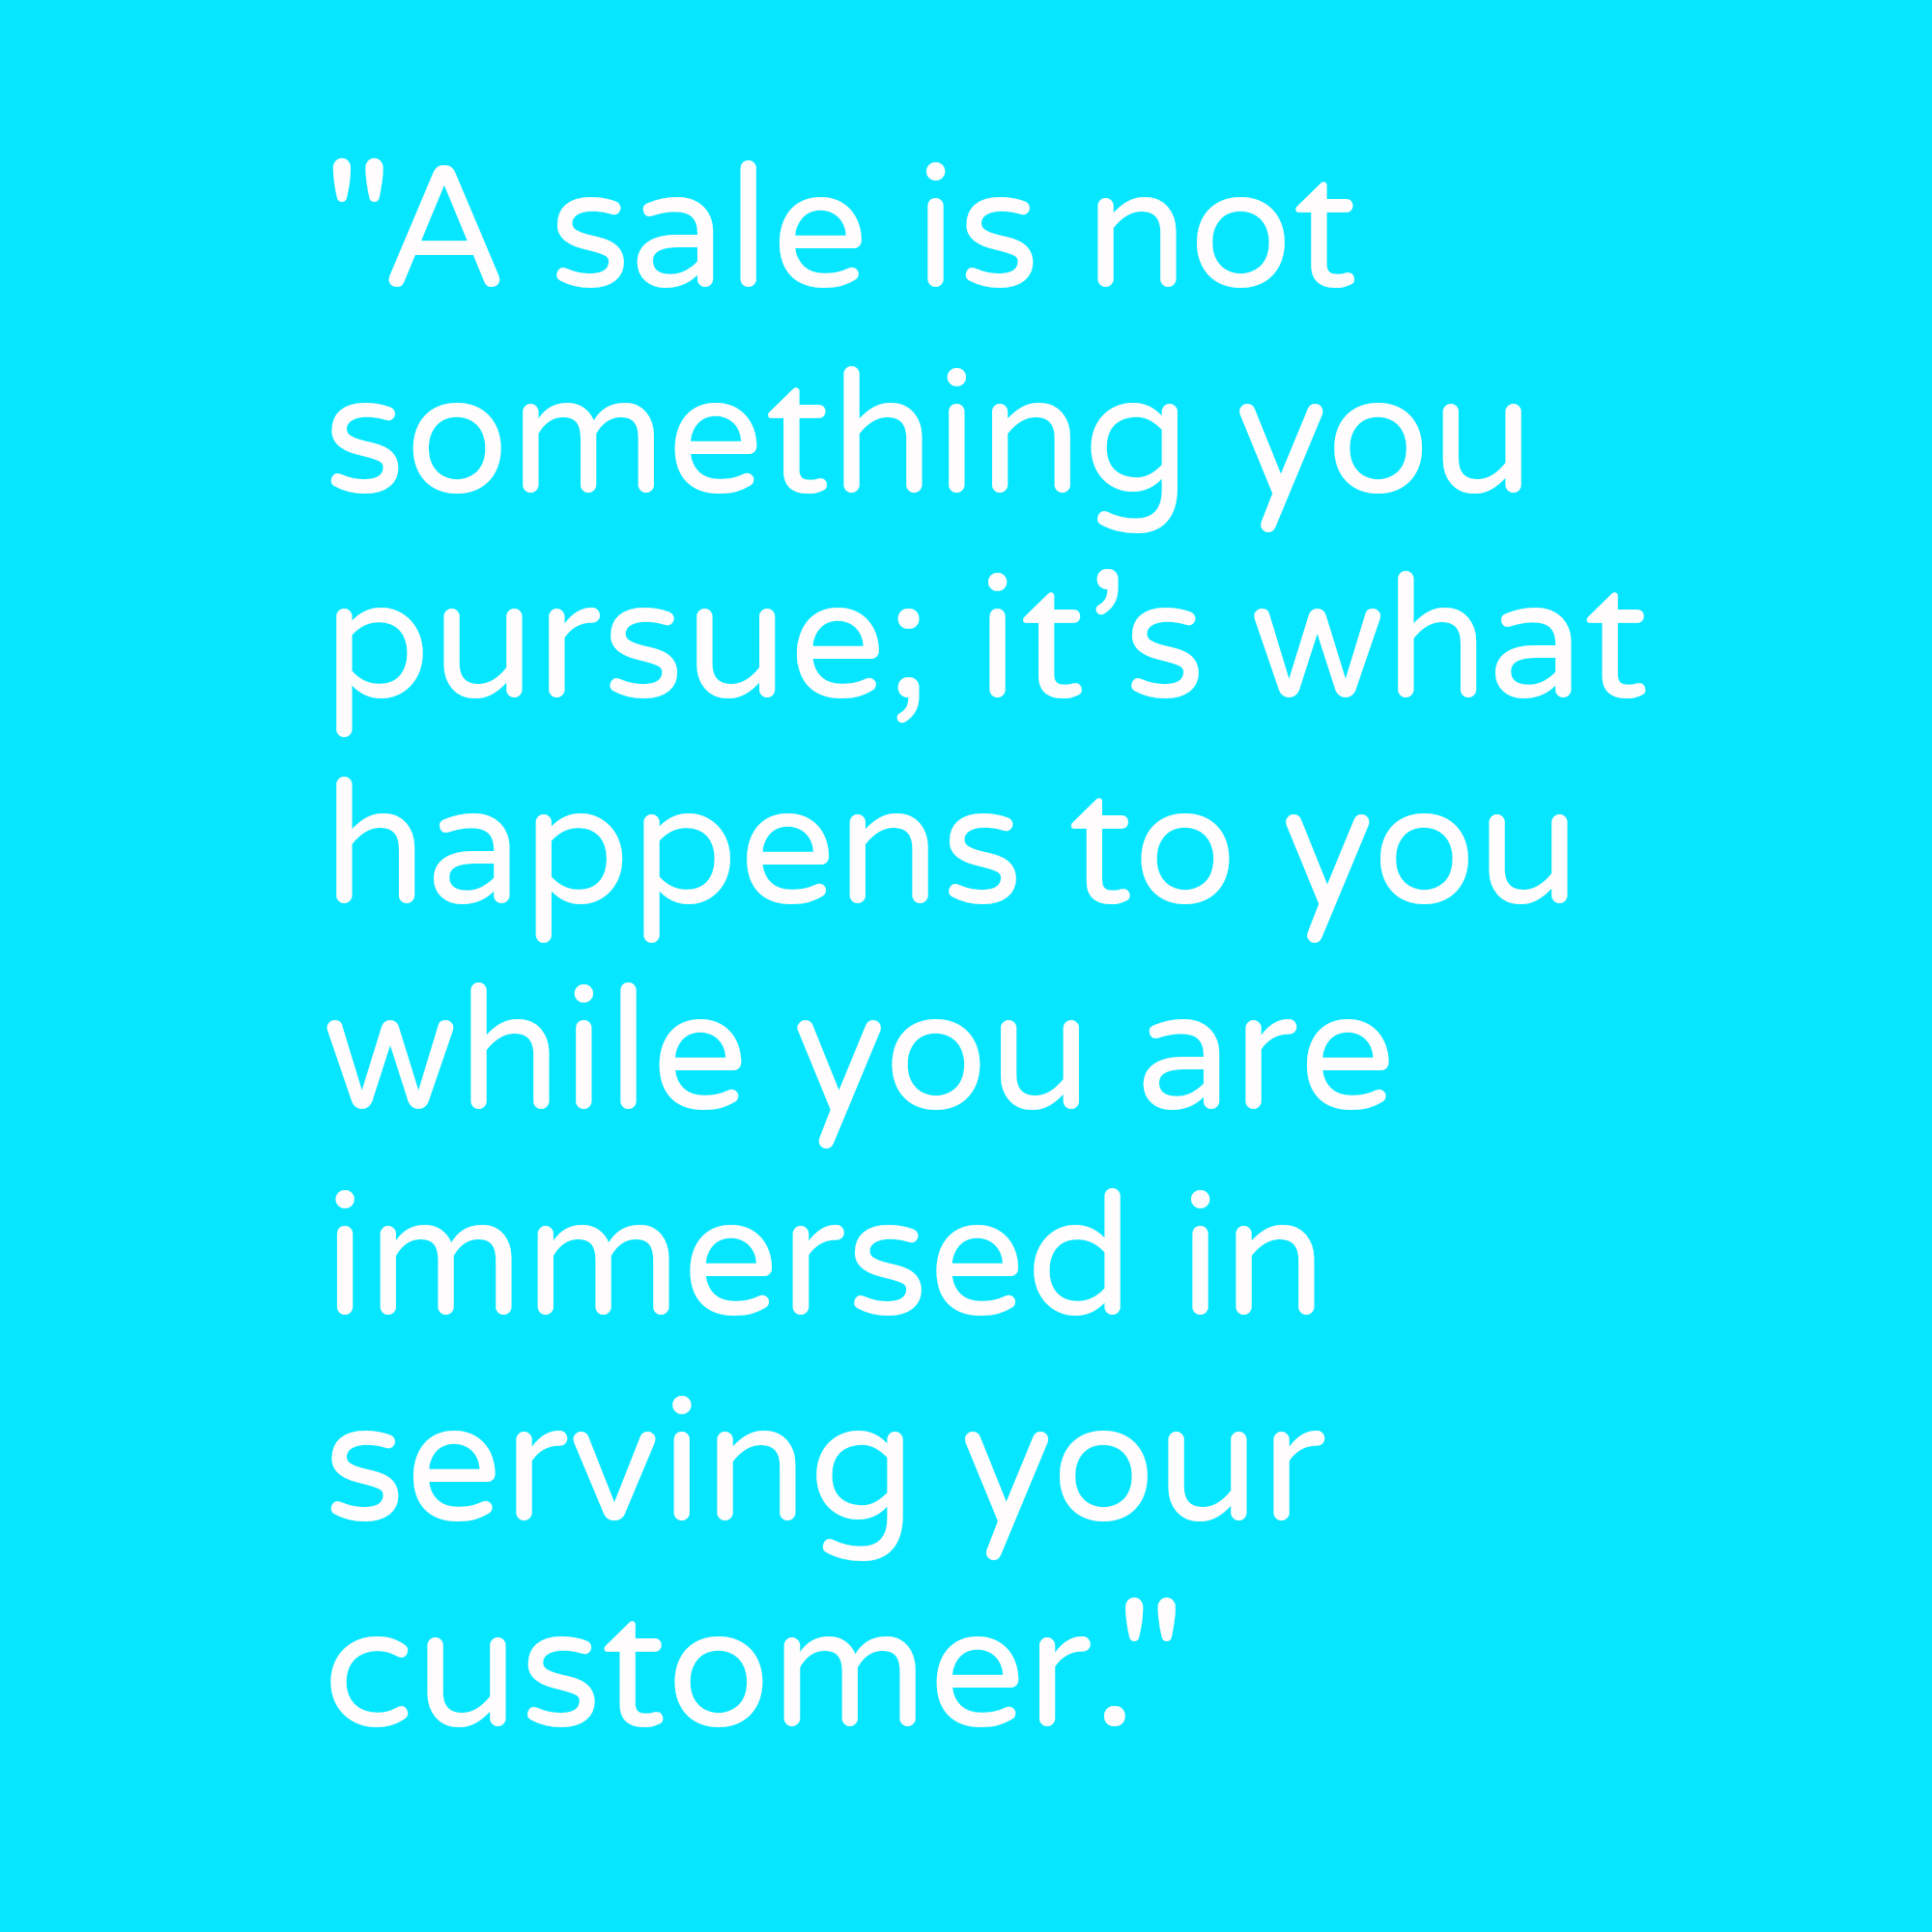 How do you run your business? #Motivational #Sales #Quotes ...